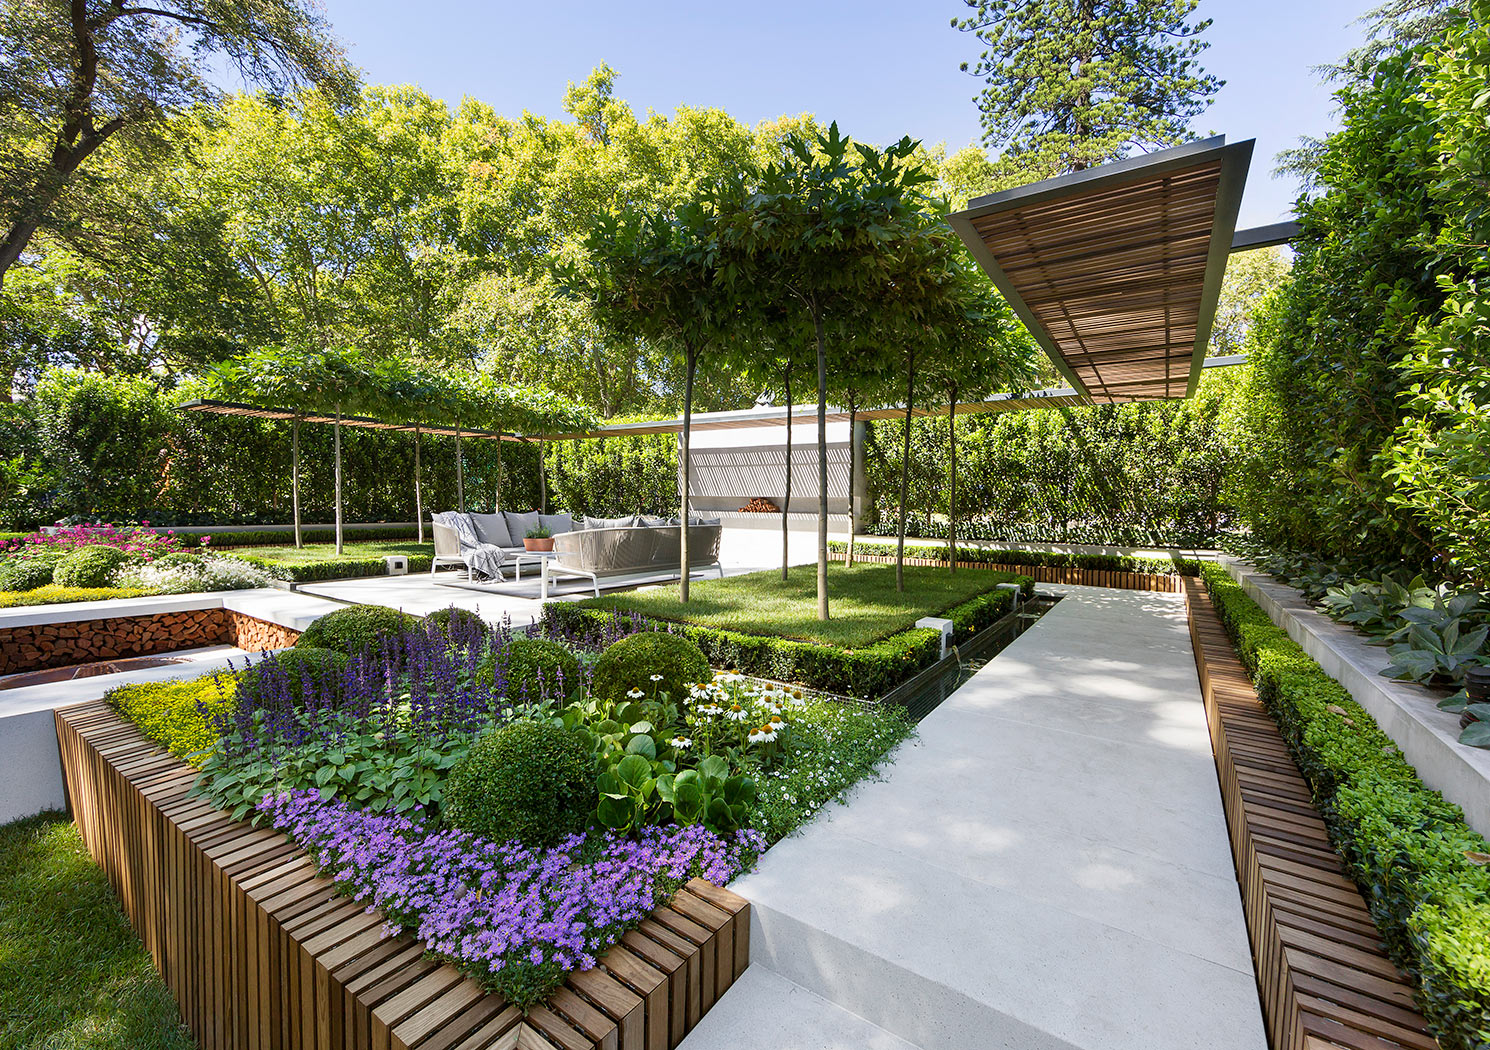 Landscape design melbourne nathan burkett design for Outdoor garden design